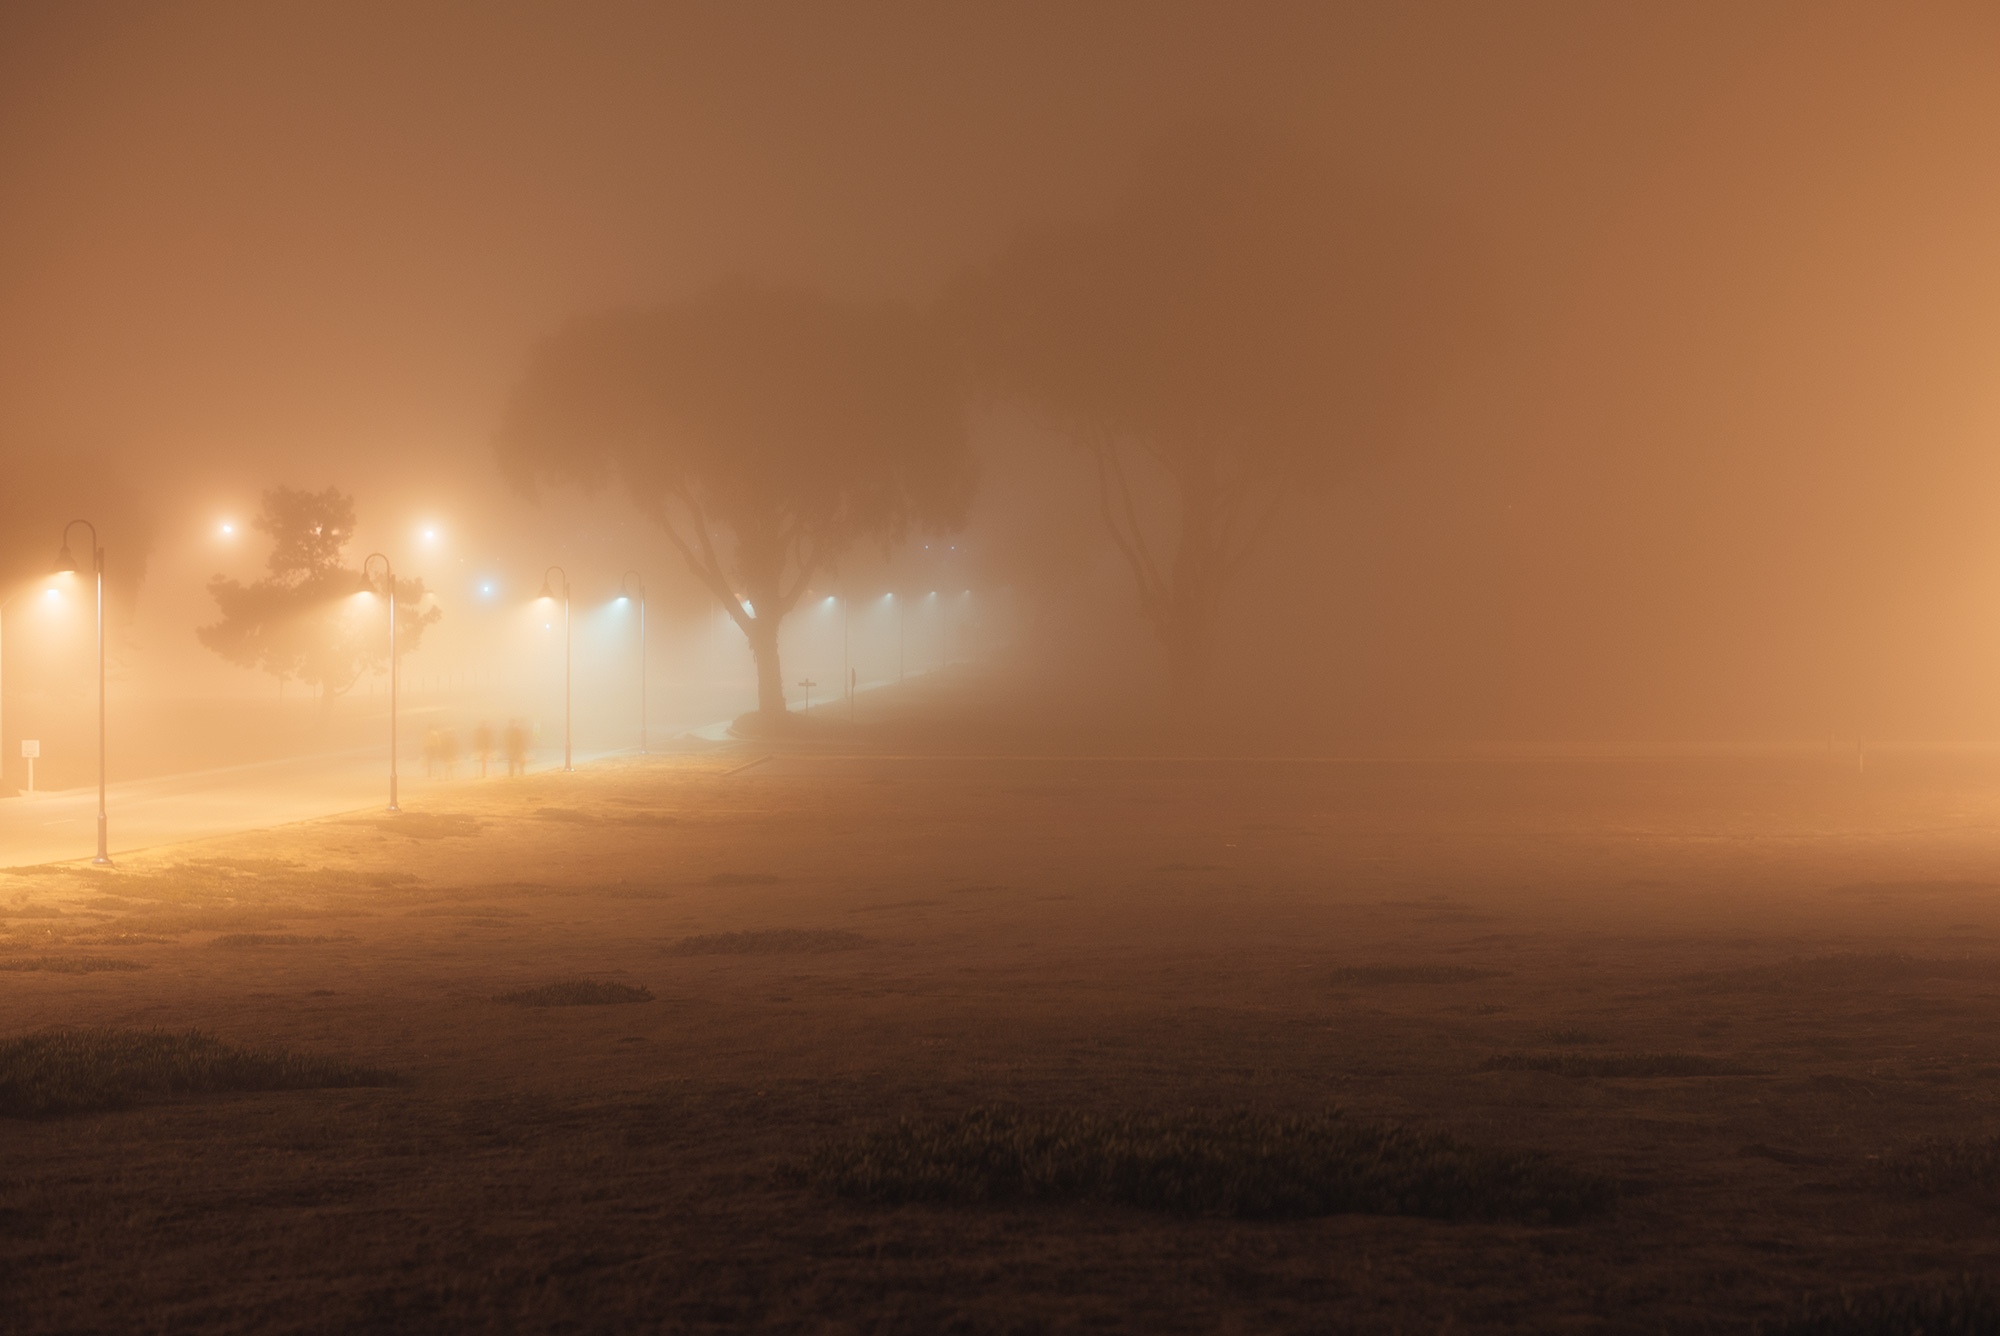 Fog at night with people.